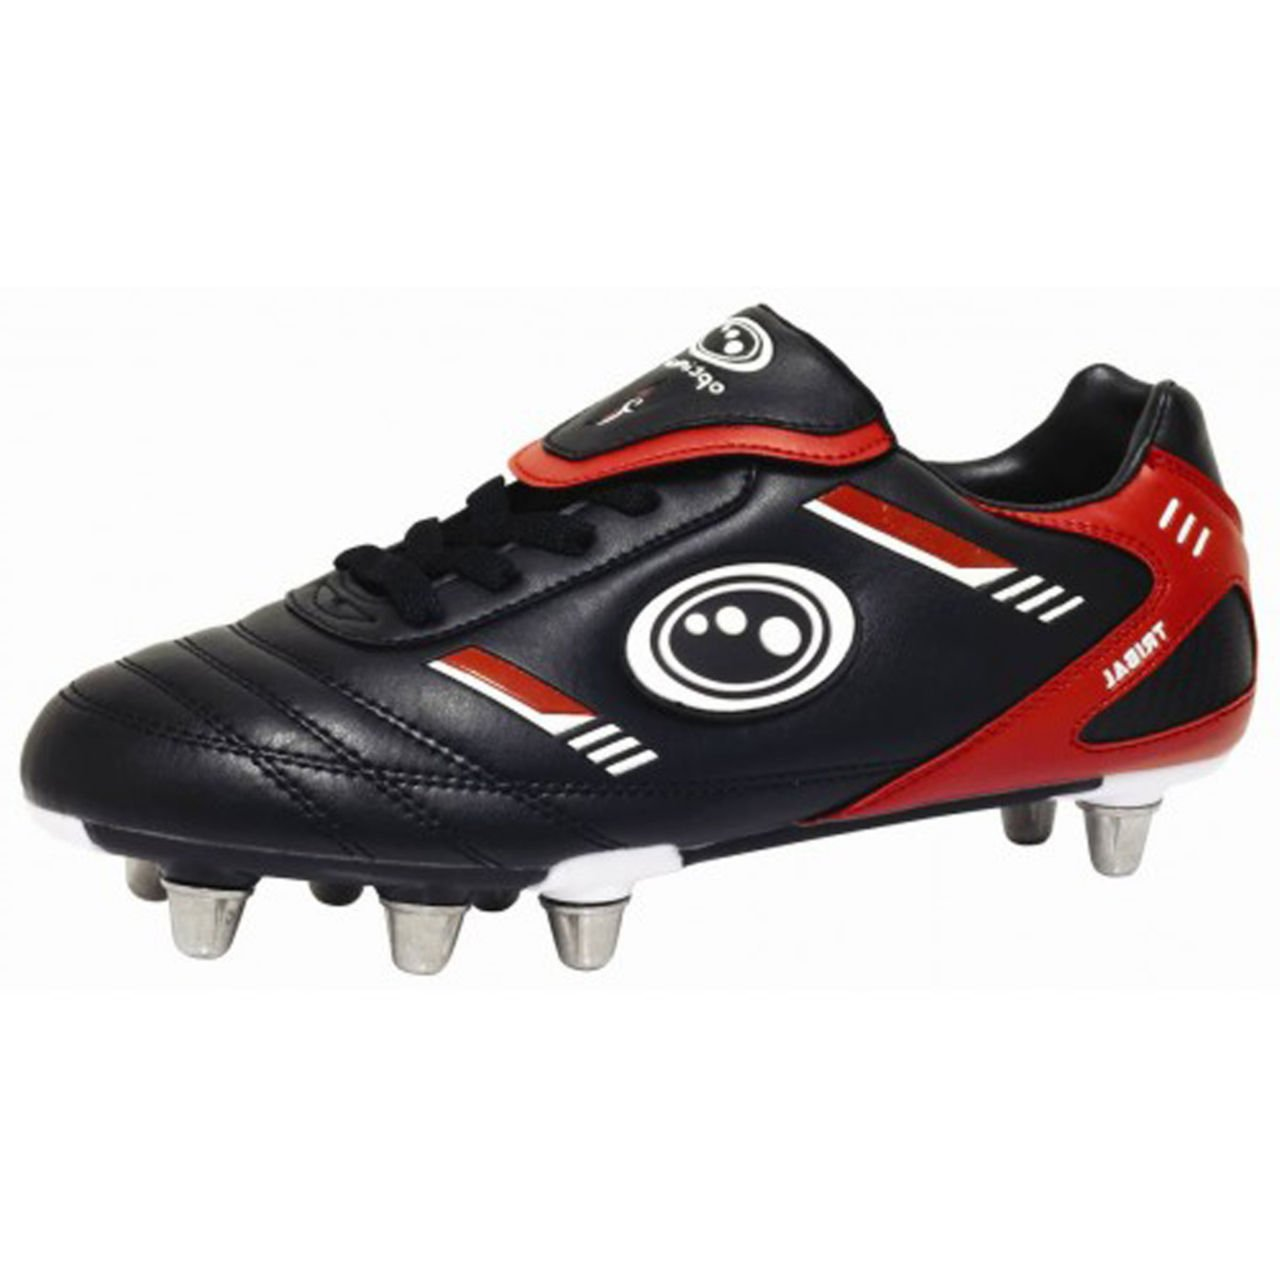 Optimum Rugby Boots Tribal Black/red - Sz 12''